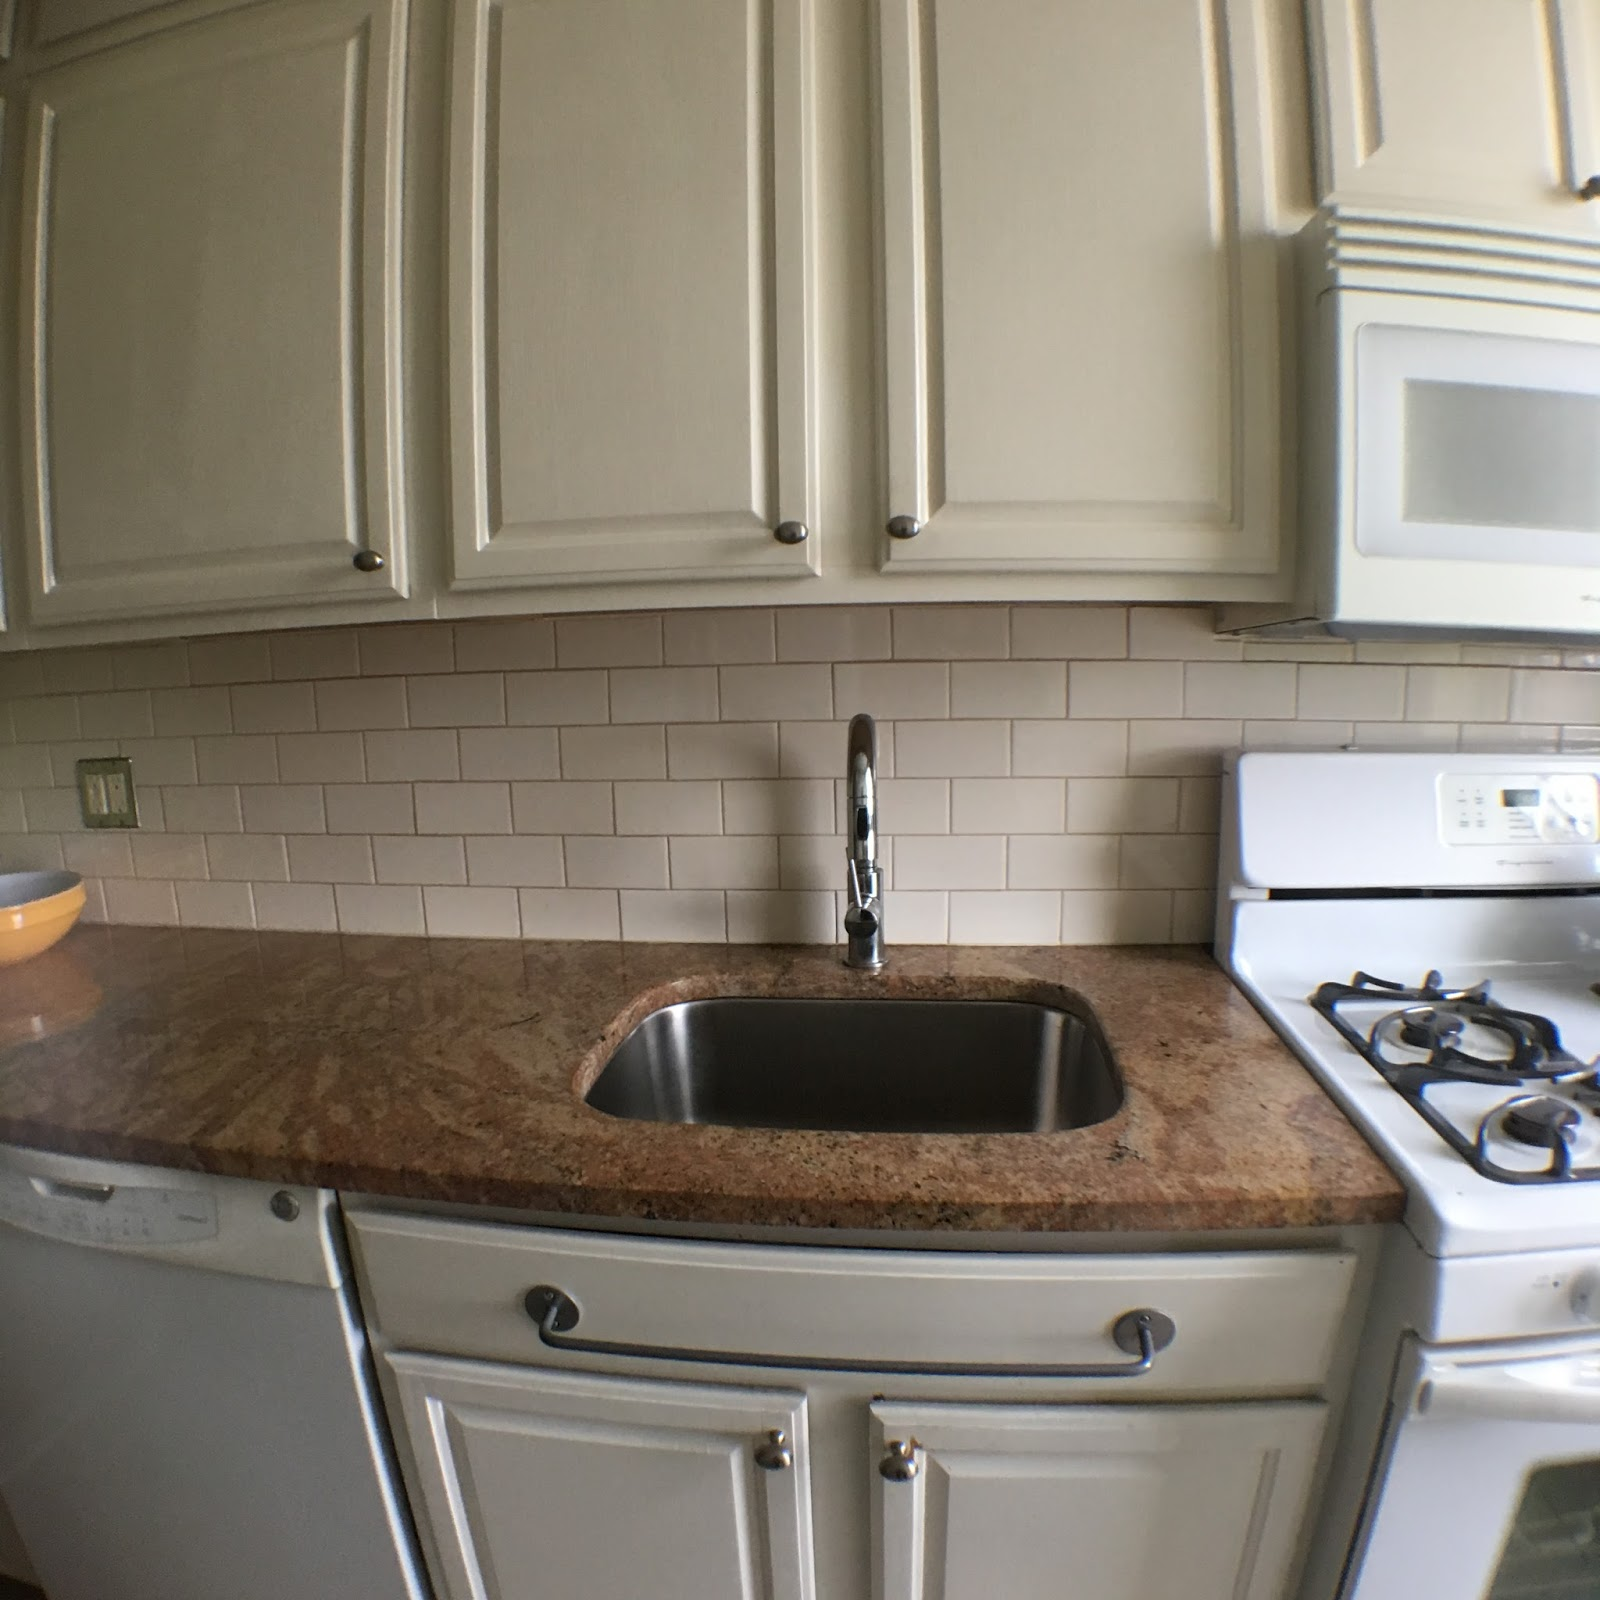 Painting The Old Kitchen Cabinets